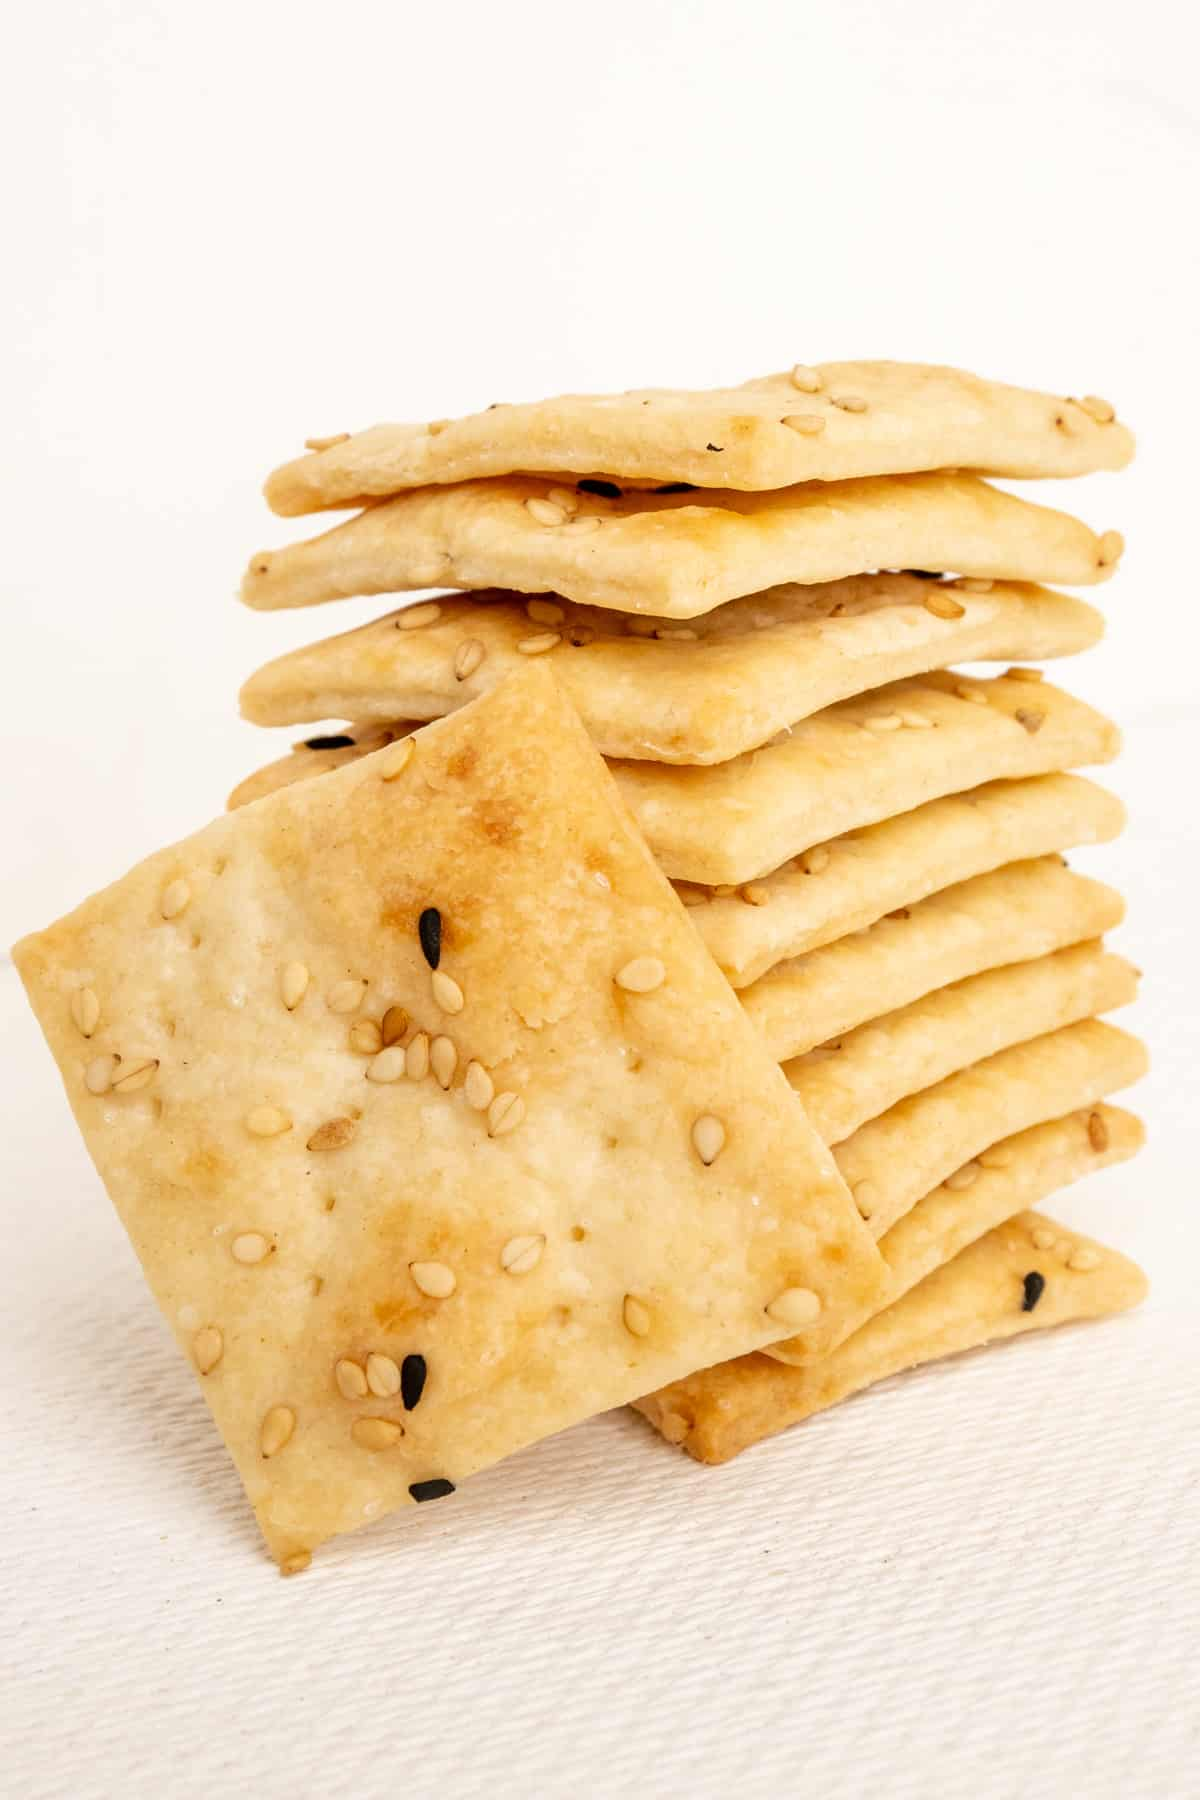 A stack of small sourdough crackers topped with sesame and nigella seeds.